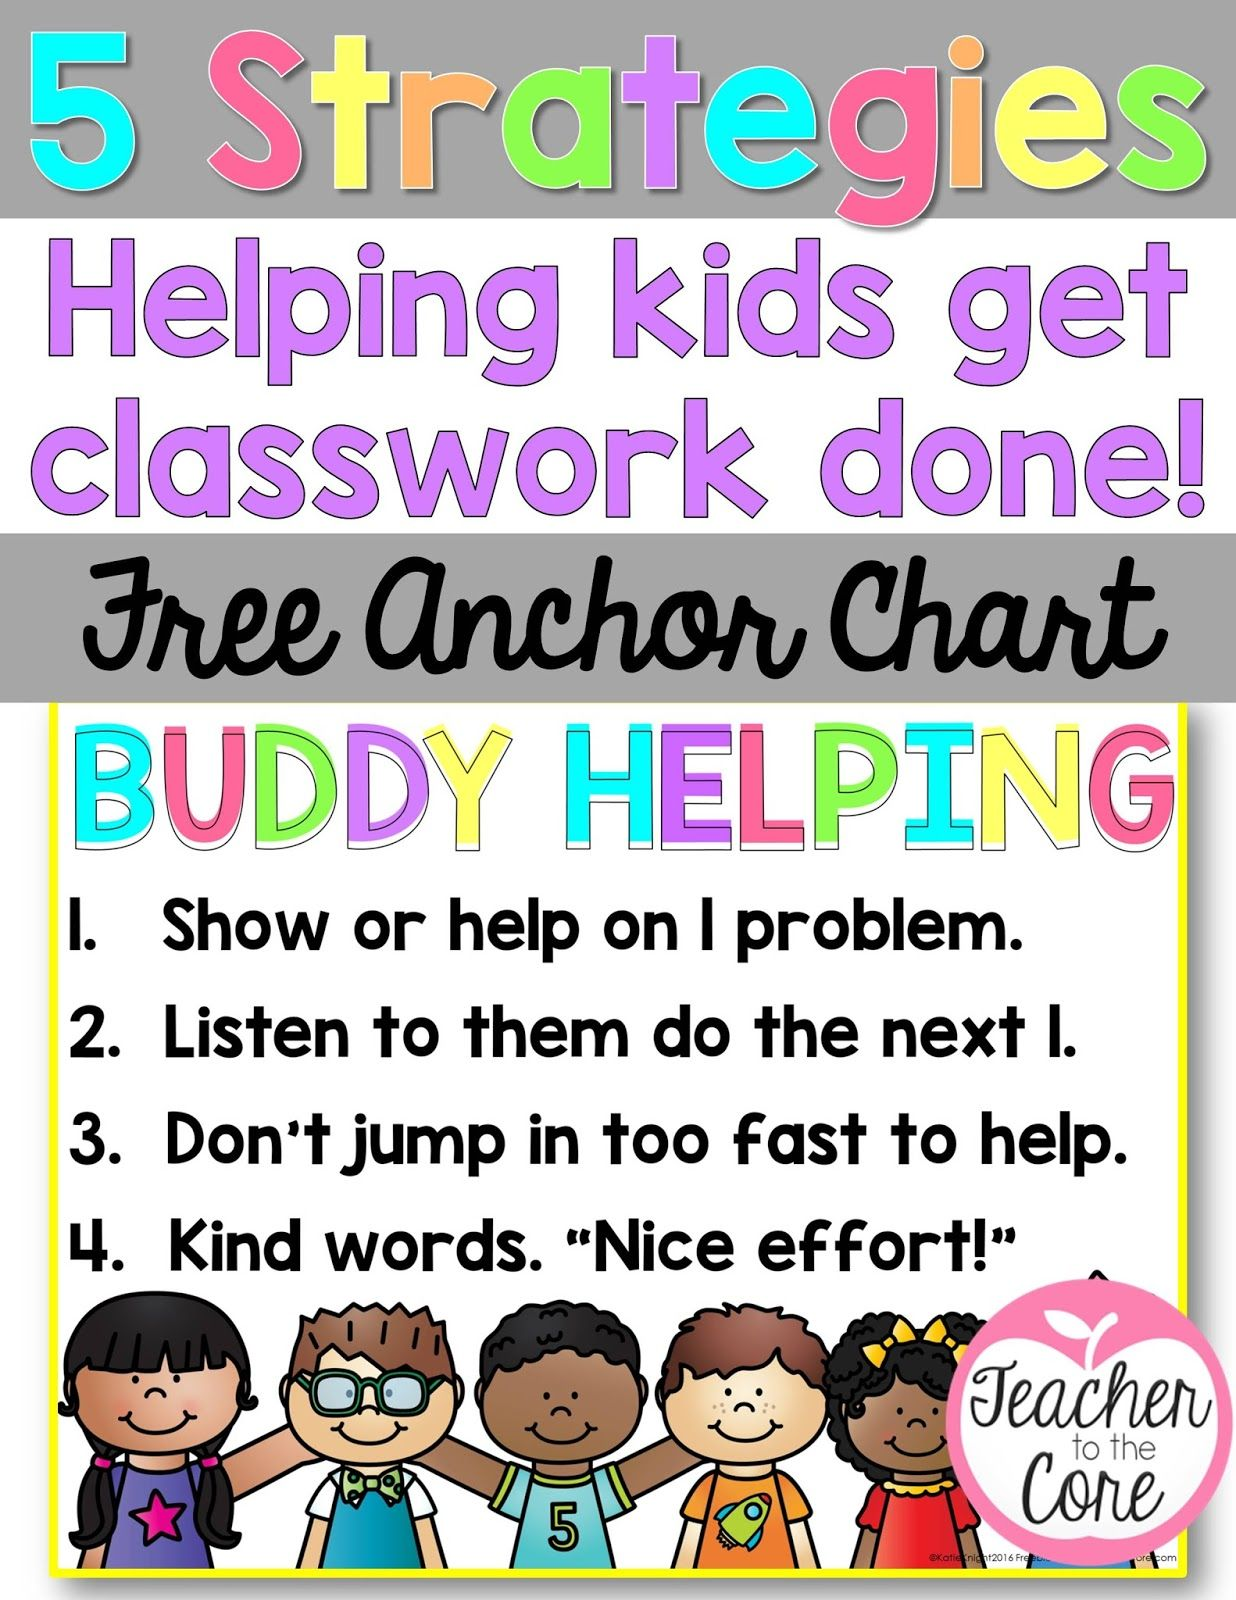 Buddies Who Are Already Done Can Help Slower Workers Get Classwork